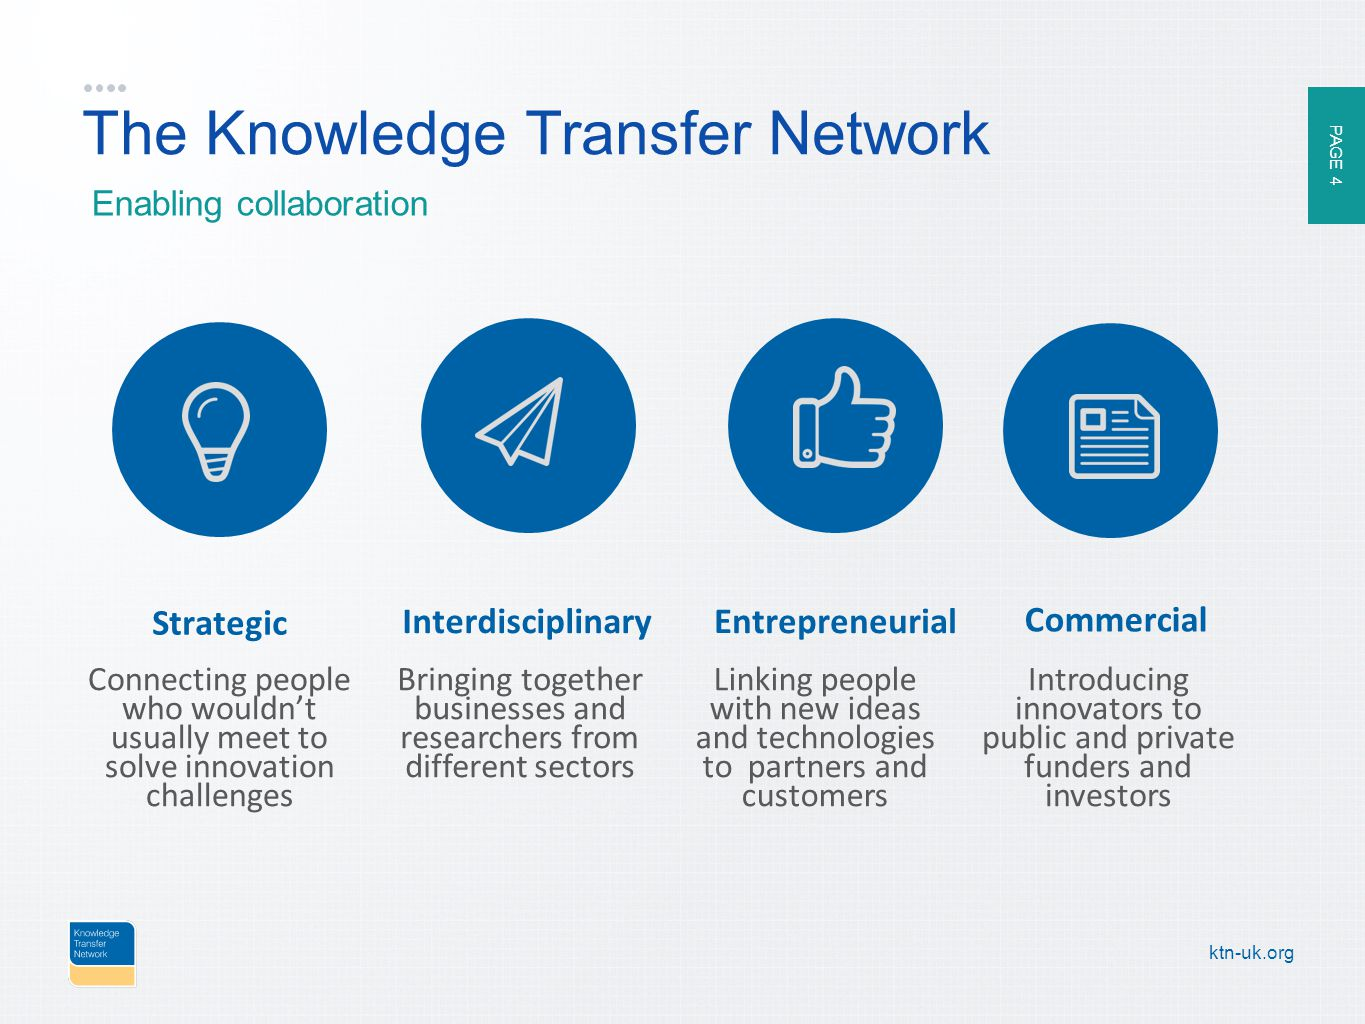 PAGE 4 ktn-uk.org The Knowledge Transfer Network Enabling collaboration Strategic InterdisciplinaryEntrepreneurial Commercial Connecting people who wouldn't usually meet to solve innovation challenges Bringing together businesses and researchers from different sectors Linking people with new ideas and technologies to partners and customers Introducing innovators to public and private funders and investors